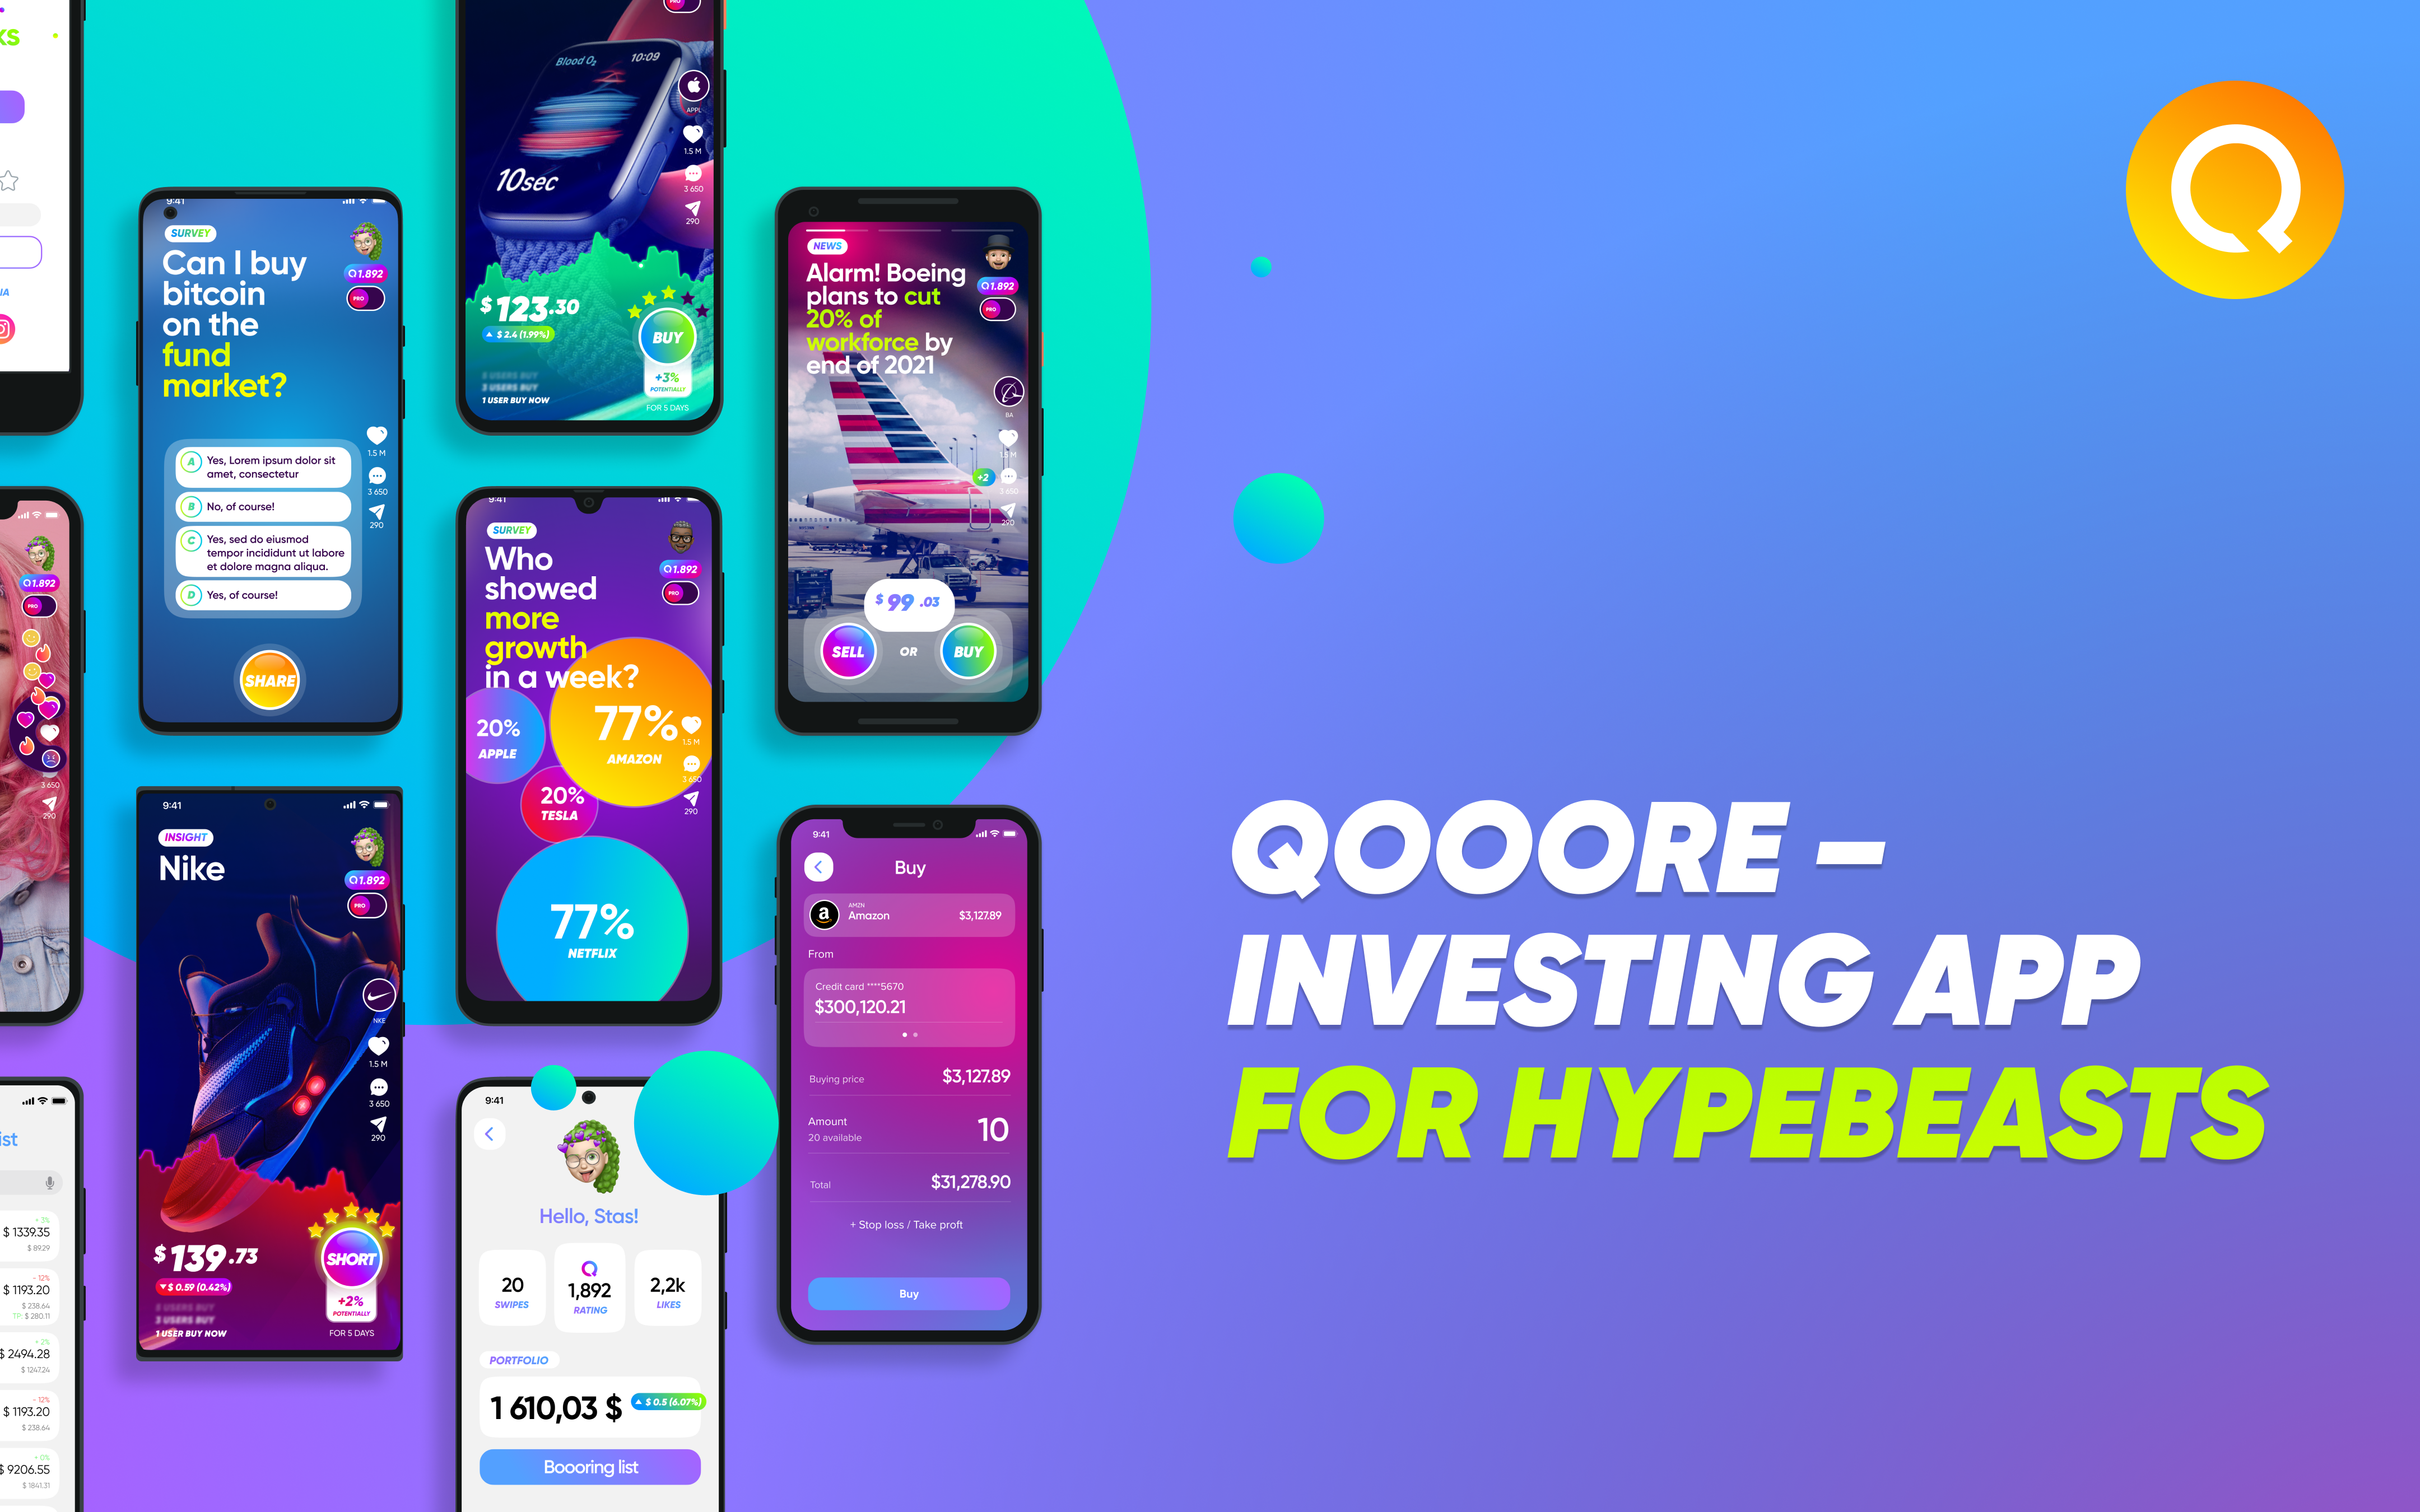 Qooore Product Hunt Image